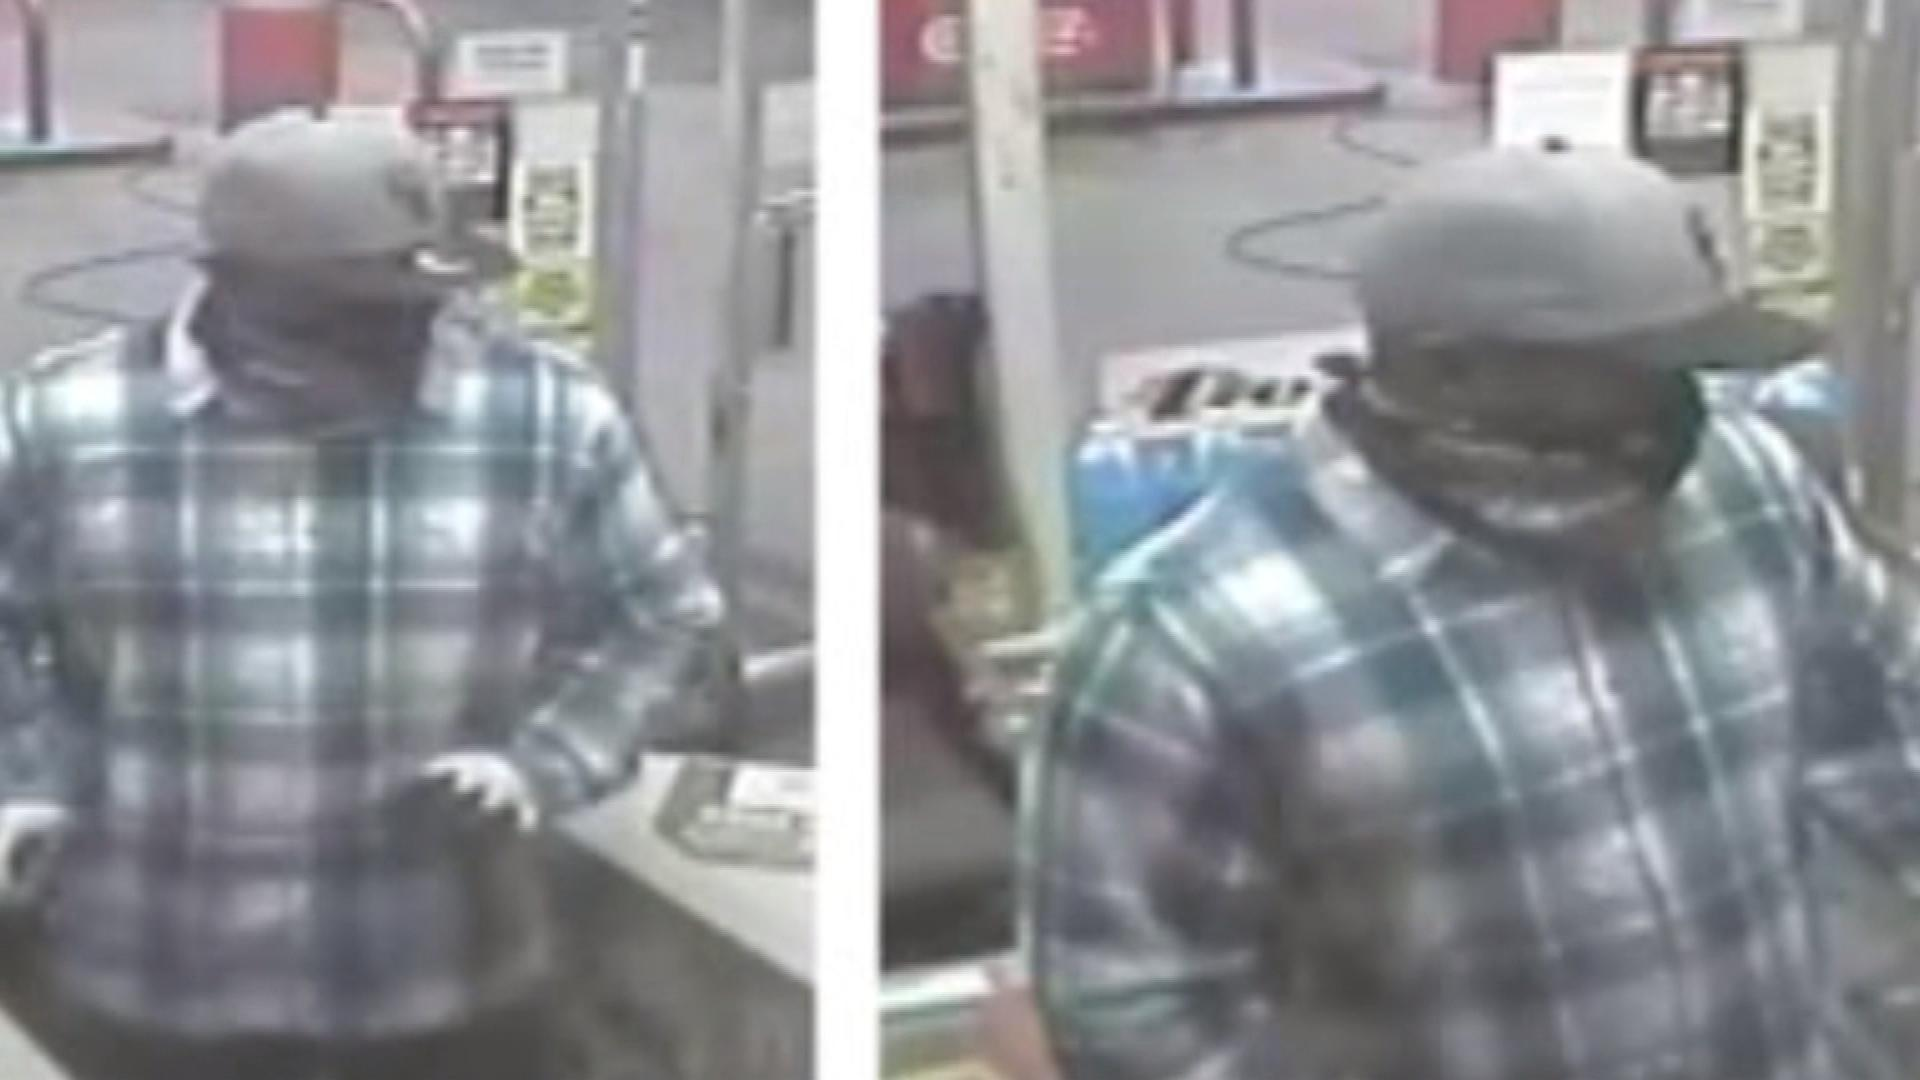 The Conoco station robbery suspect (credit: Denver Police Department)